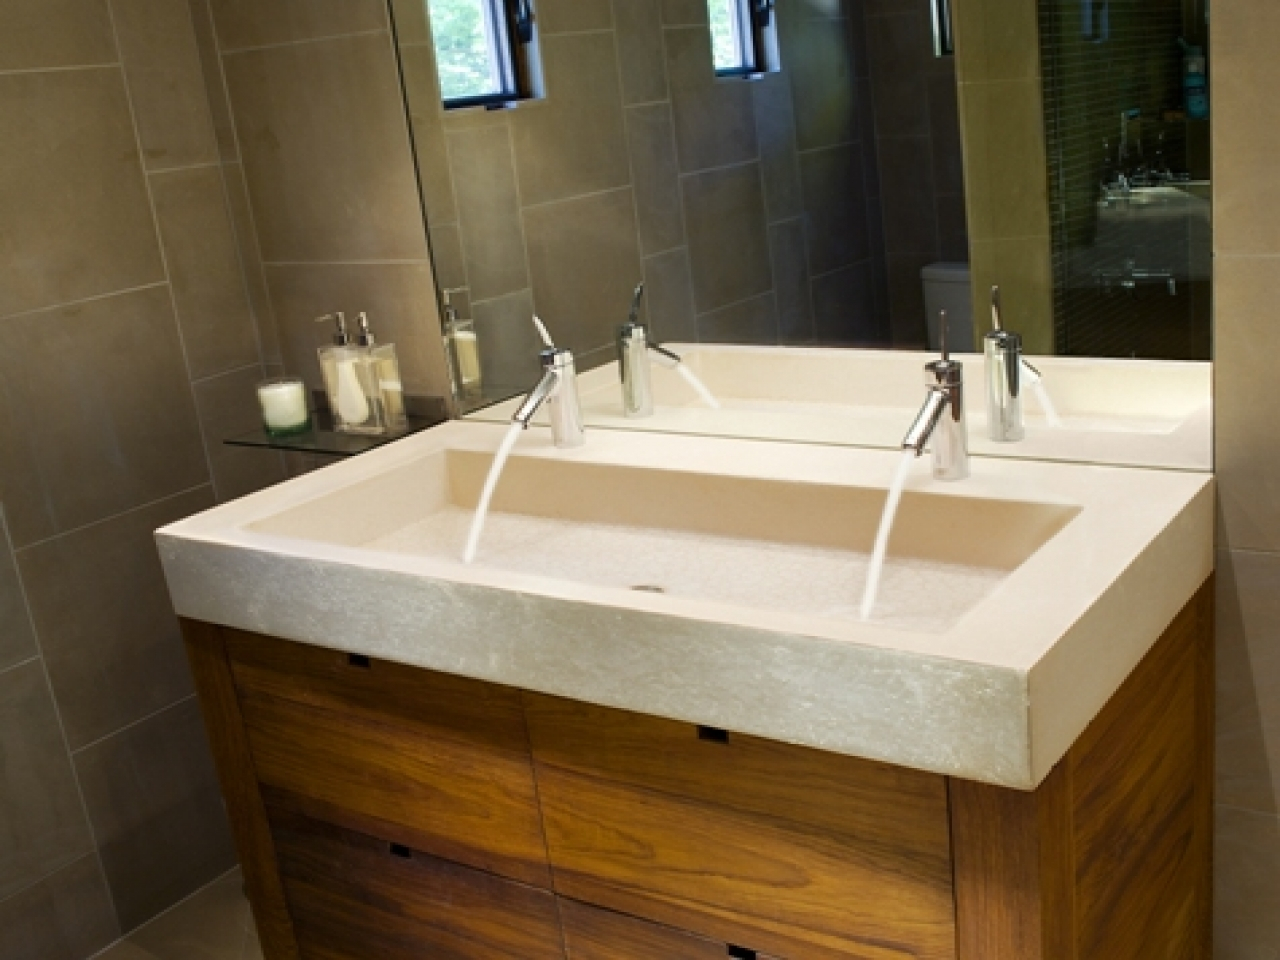 Large Single Bathroom Sink With Two Faucets Faucet Ideas Site